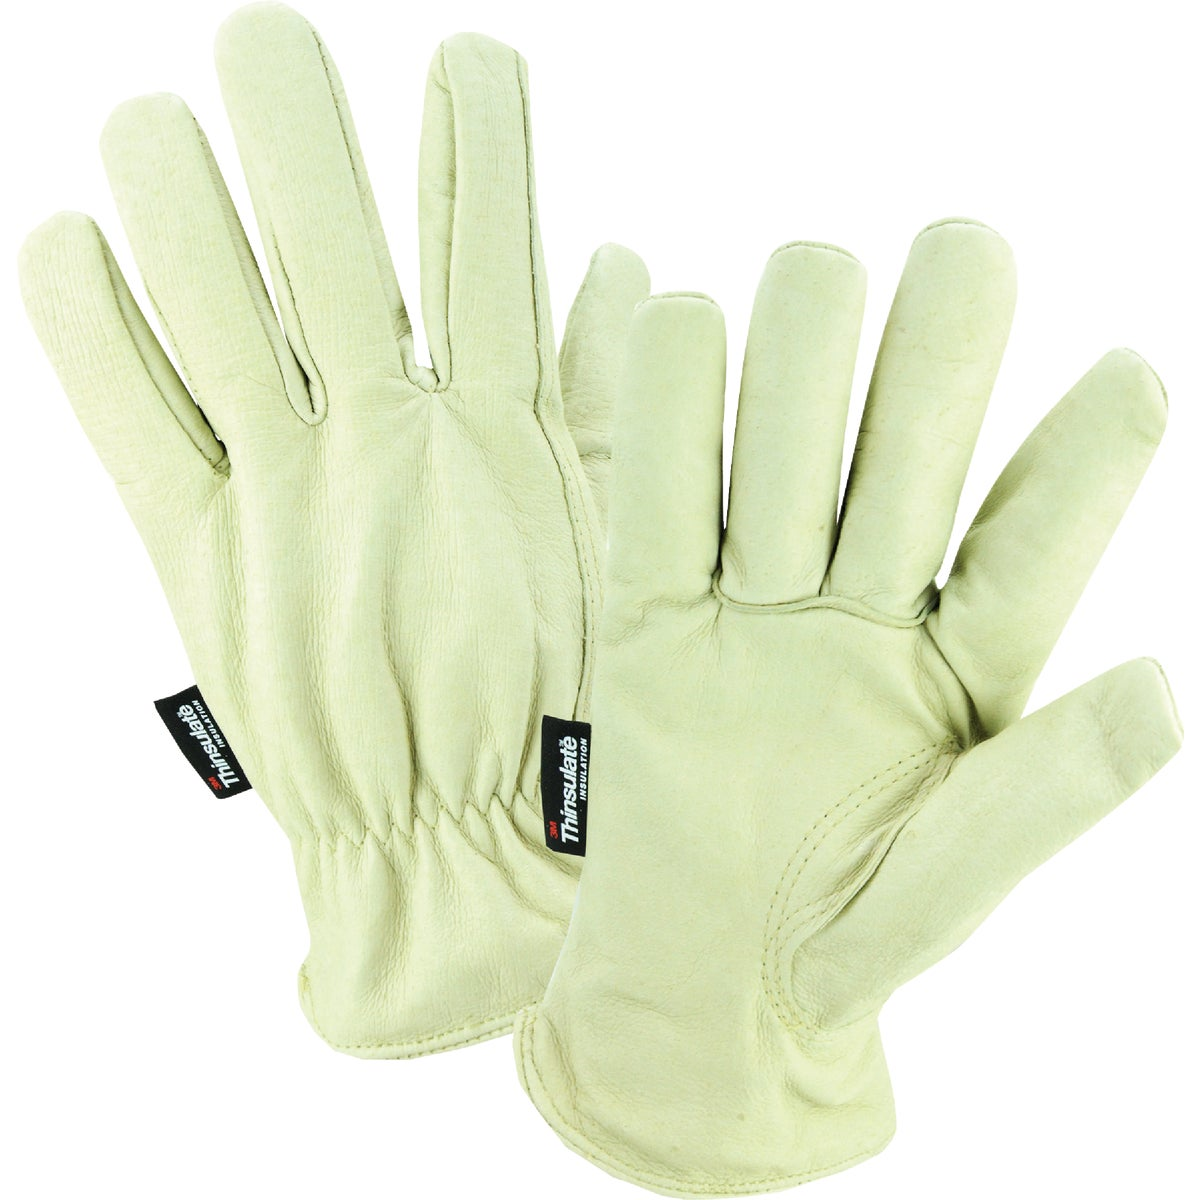 LRG LEATHER LINED GLOVE - 1108L by Wells Lamont